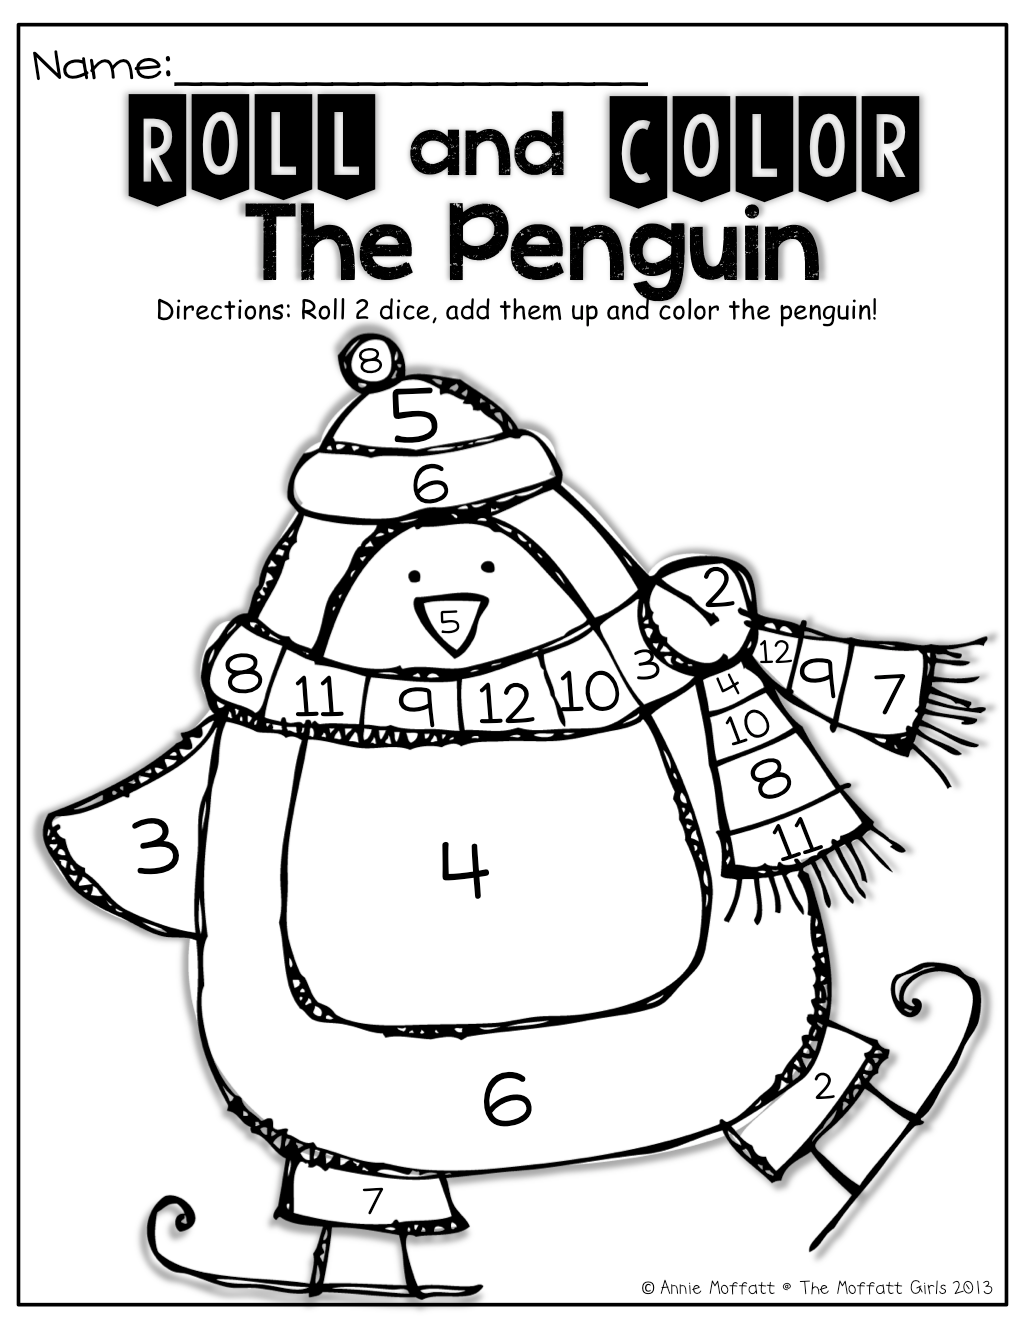 Roll 2 dice, add them up and color the penguin! Great